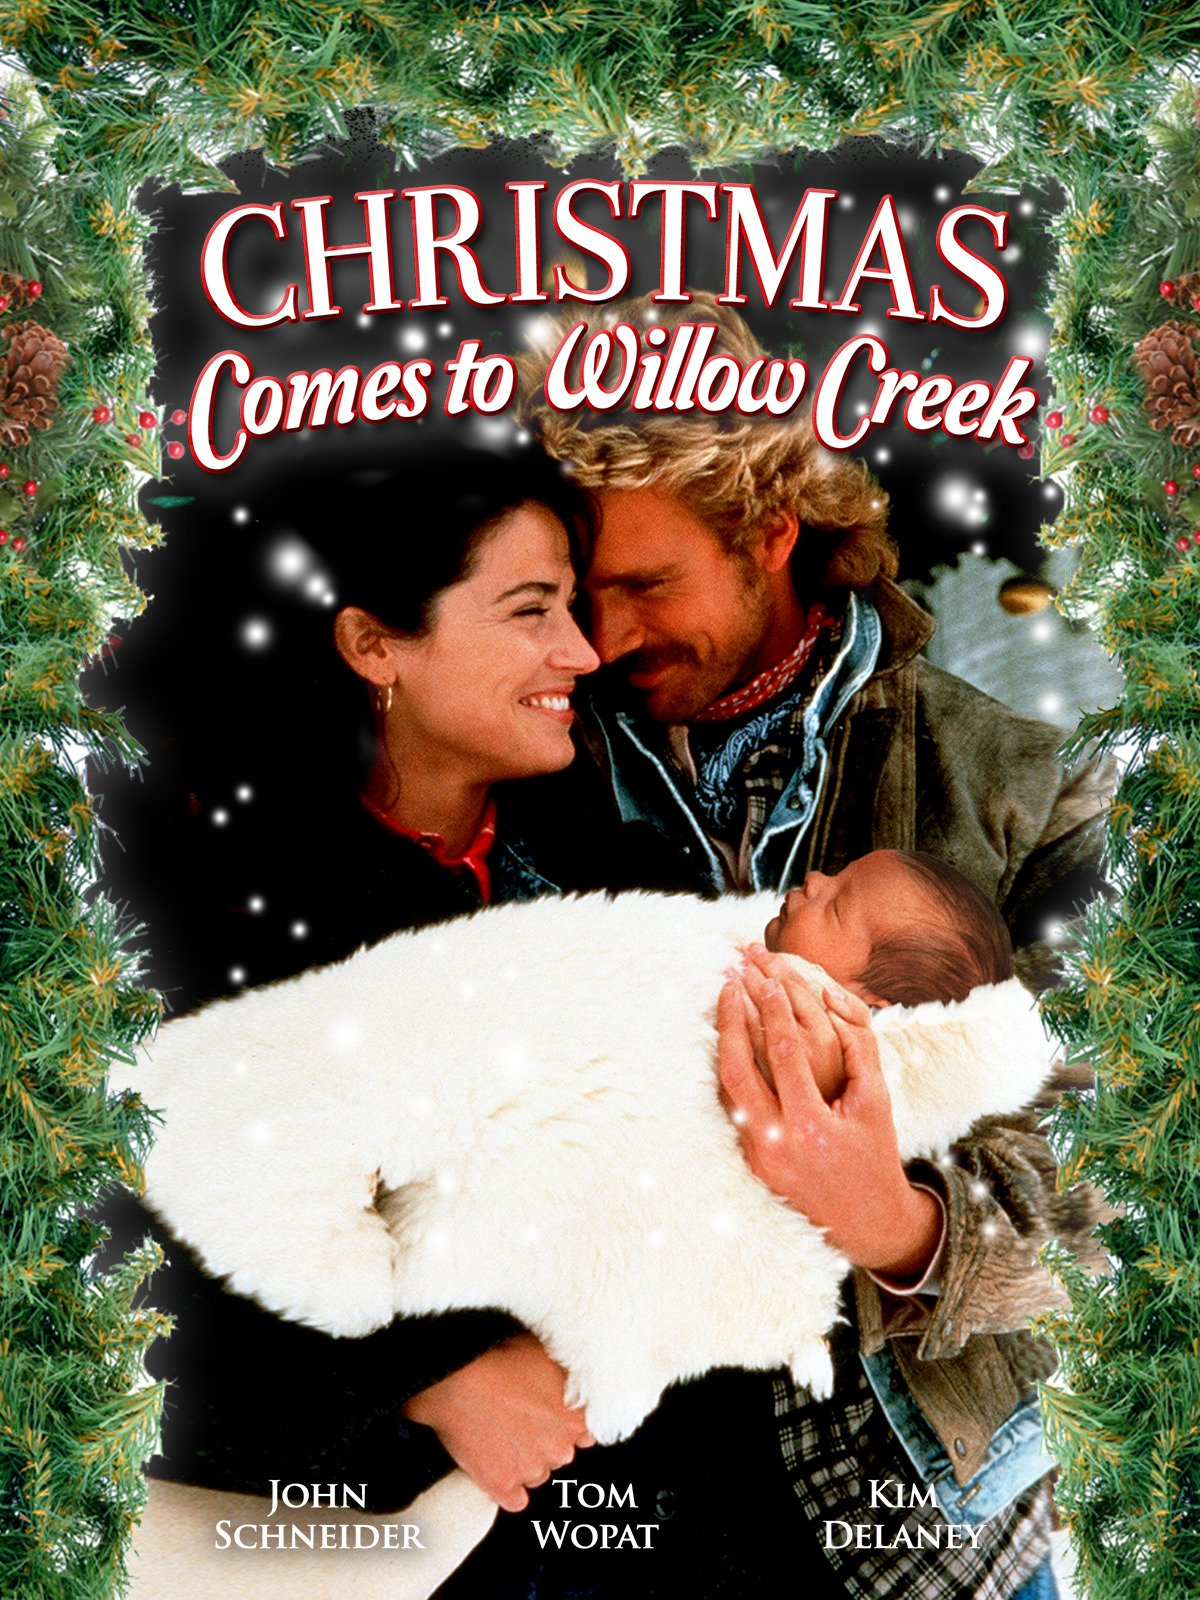 Amazon.com: Watch Christmas Comes To Willow Creek | Prime Video